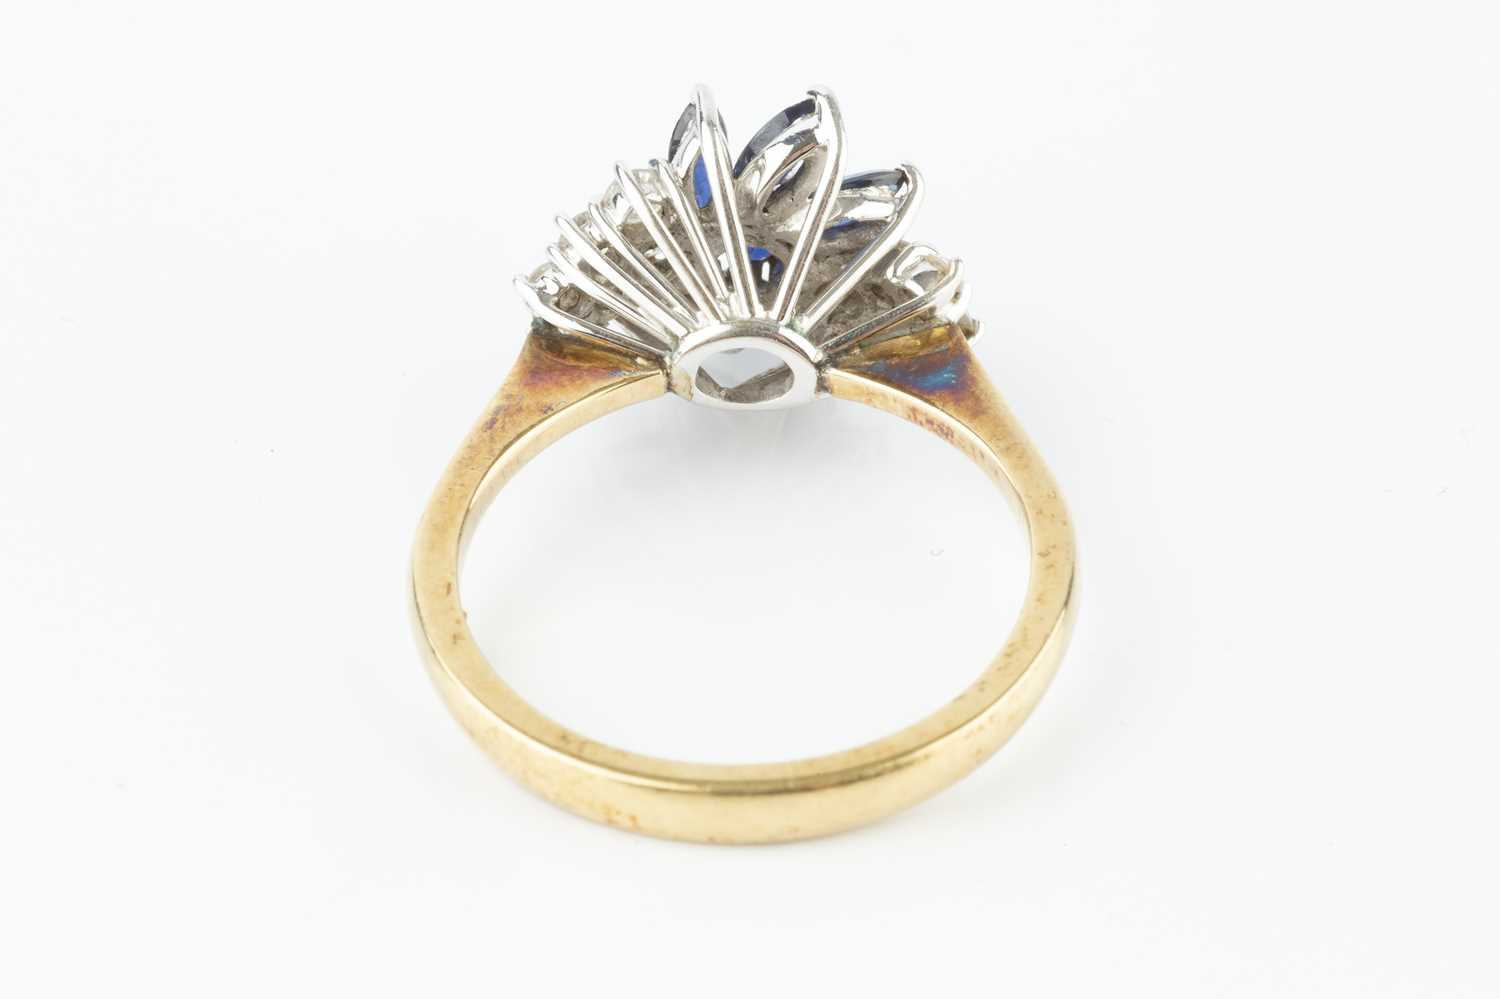 A sapphire and diamond cluster ring, designed as an abstract spray of circular mixed-cut and - Image 3 of 3